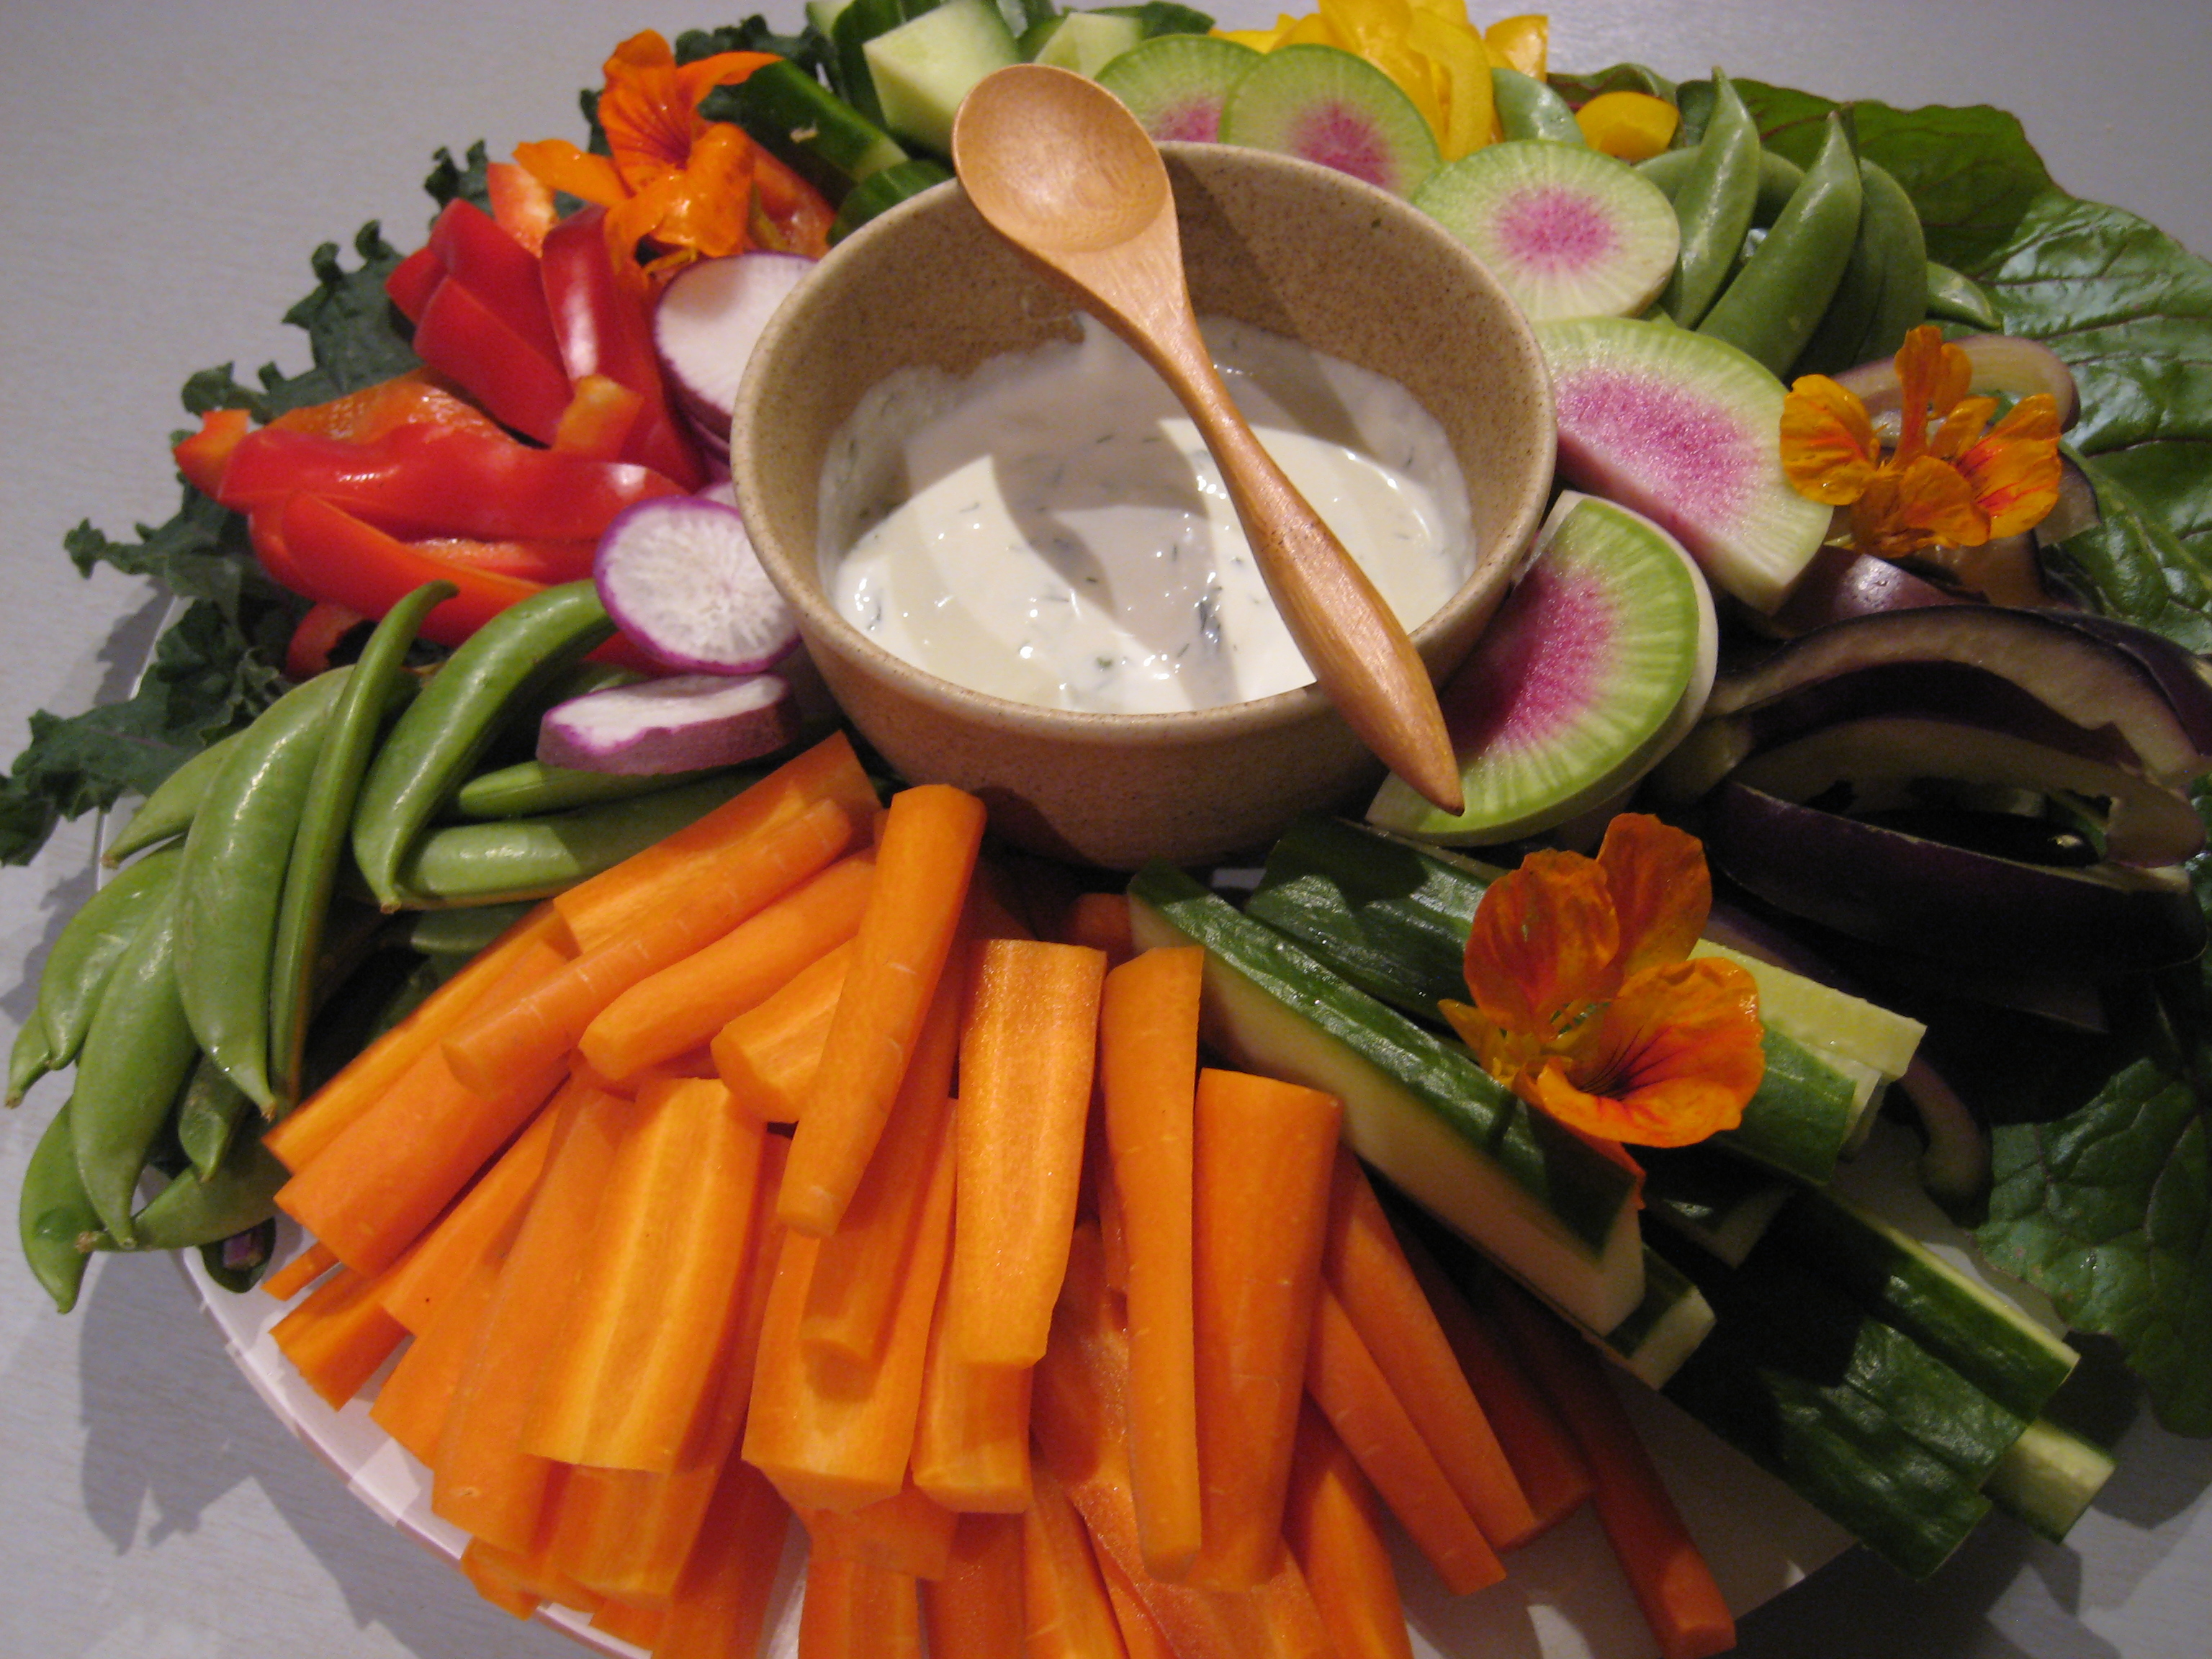 How To Make A Beautiful Vegetable Platter Trust In Kim